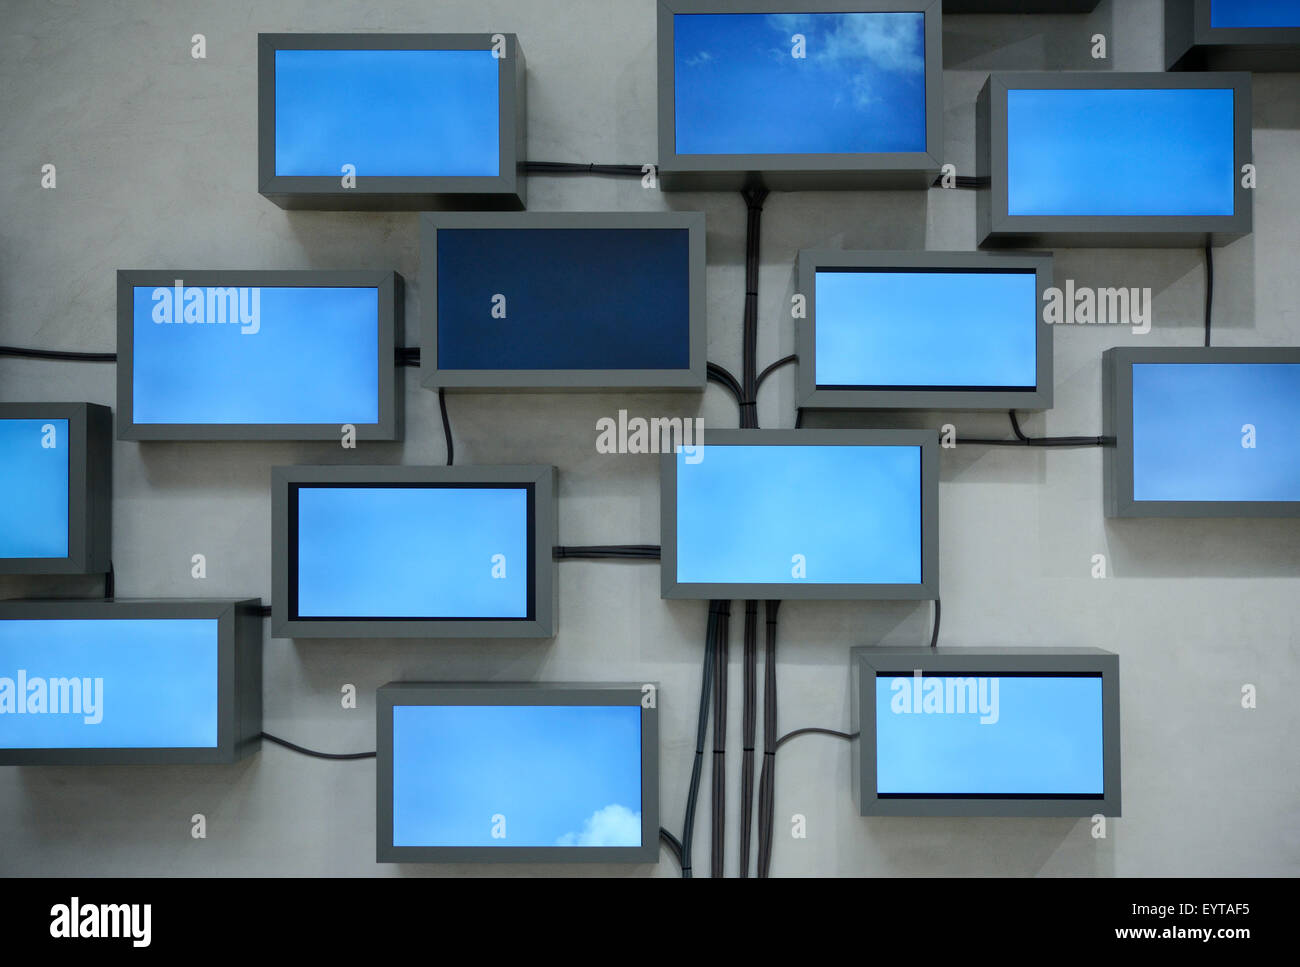 Tv Monitor Wall Stock Photos & Tv Monitor Wall Stock Images - Alamy